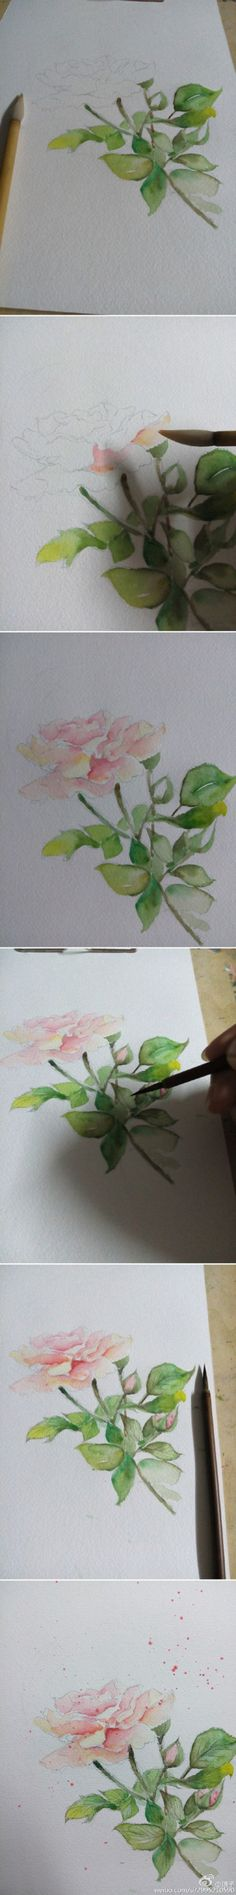 20 Delicate Colorful Watercolor Flower Painting Tutorials In Images-HOMESTHETICS (2)